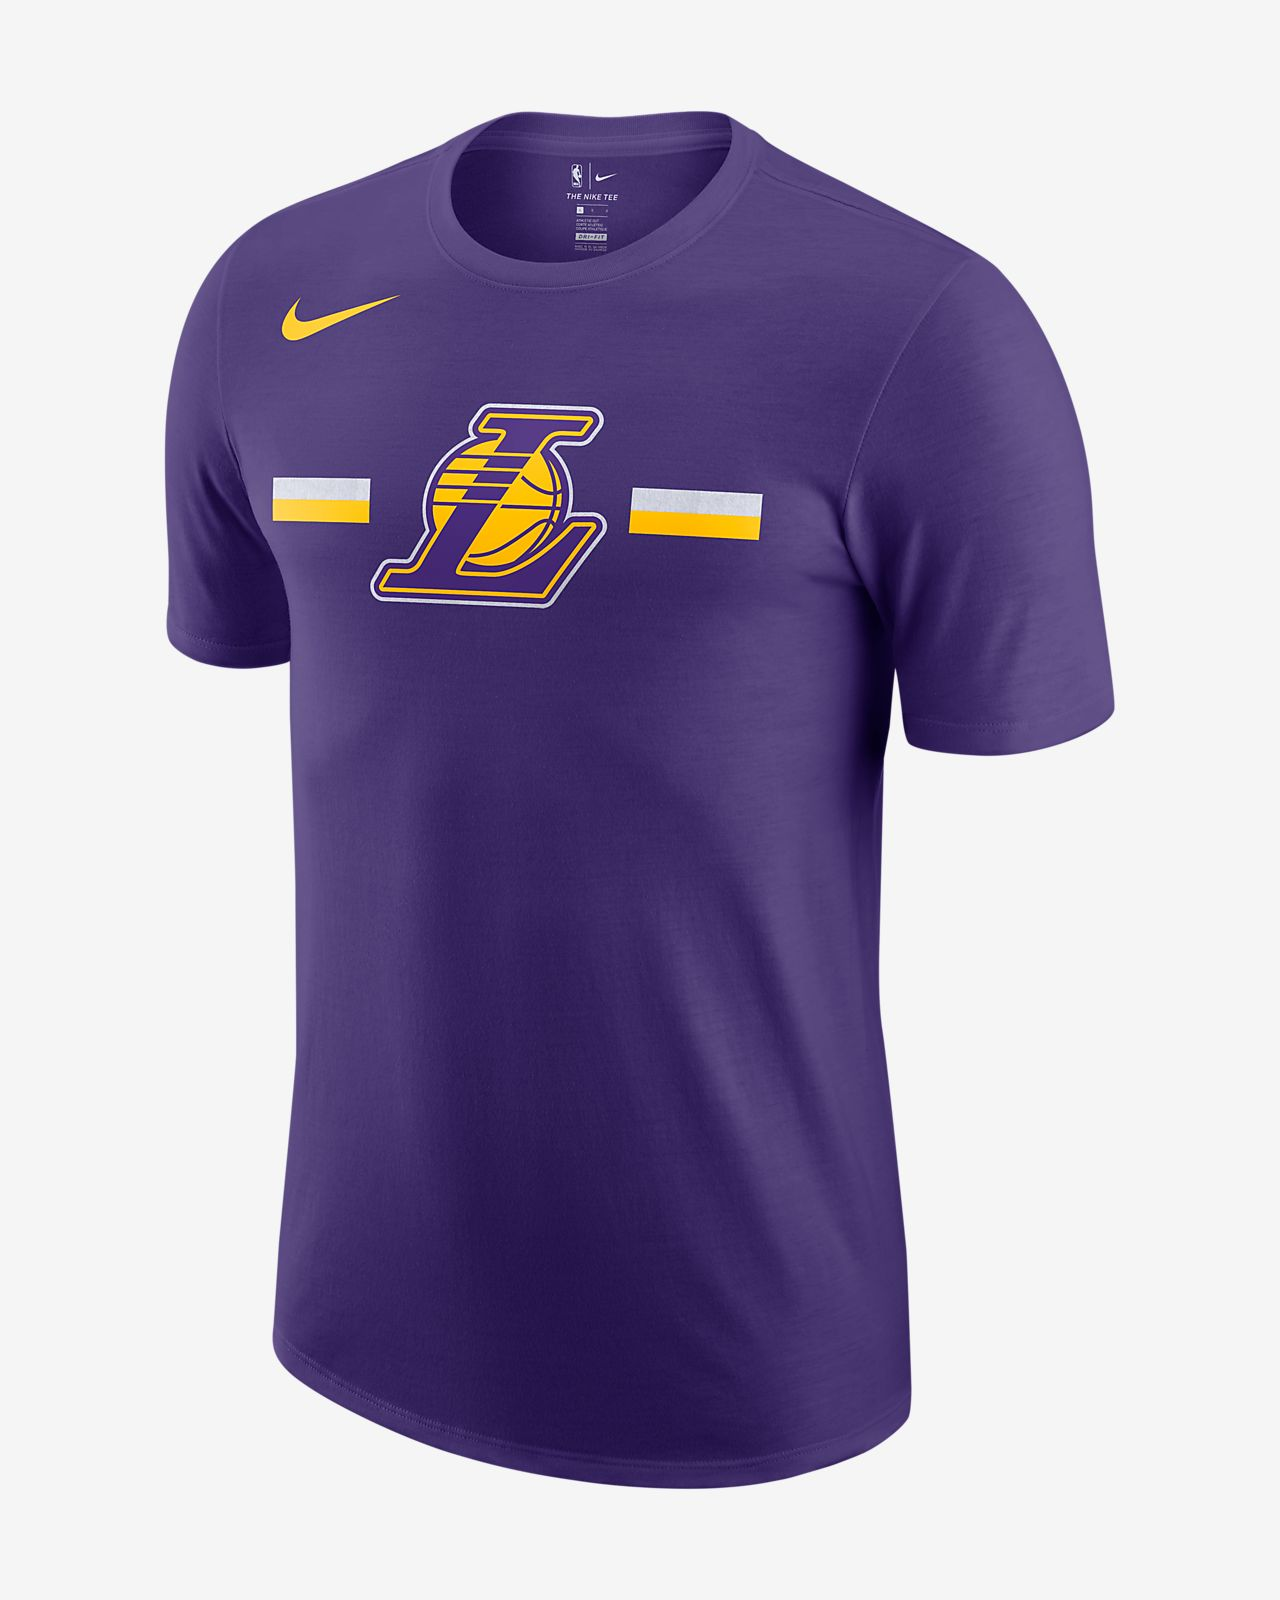 0b19cb42018f Los Angeles Lakers Nike Dri-FIT Men s NBA T-Shirt. Nike.com IN